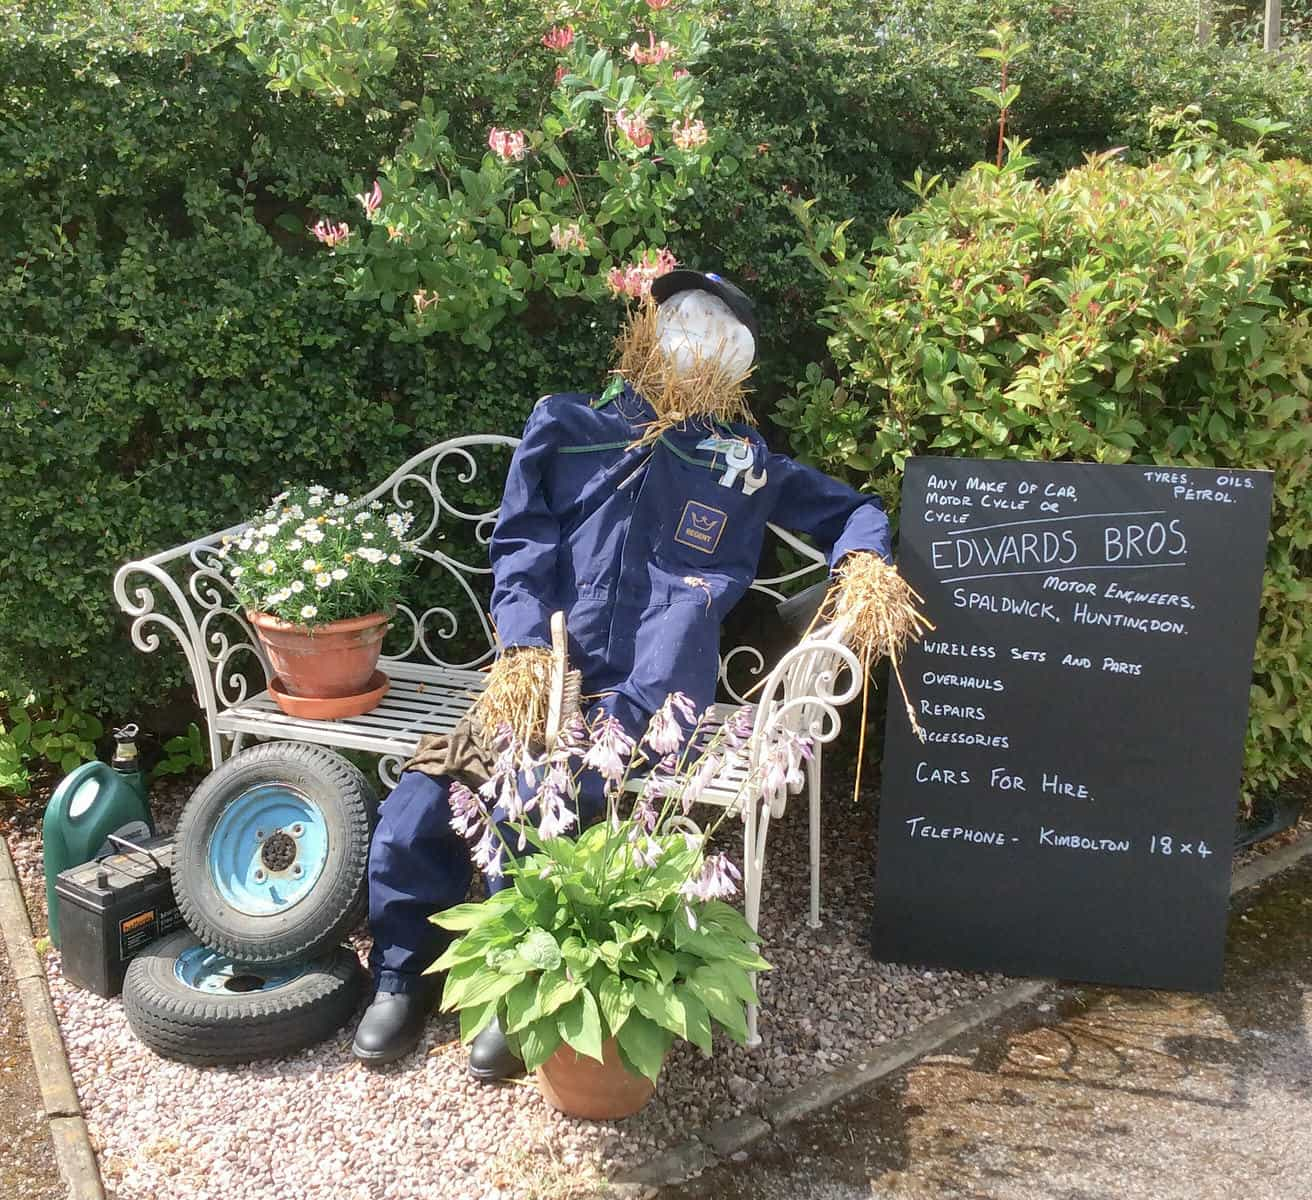 Edwards scarecrow in Spaldwick